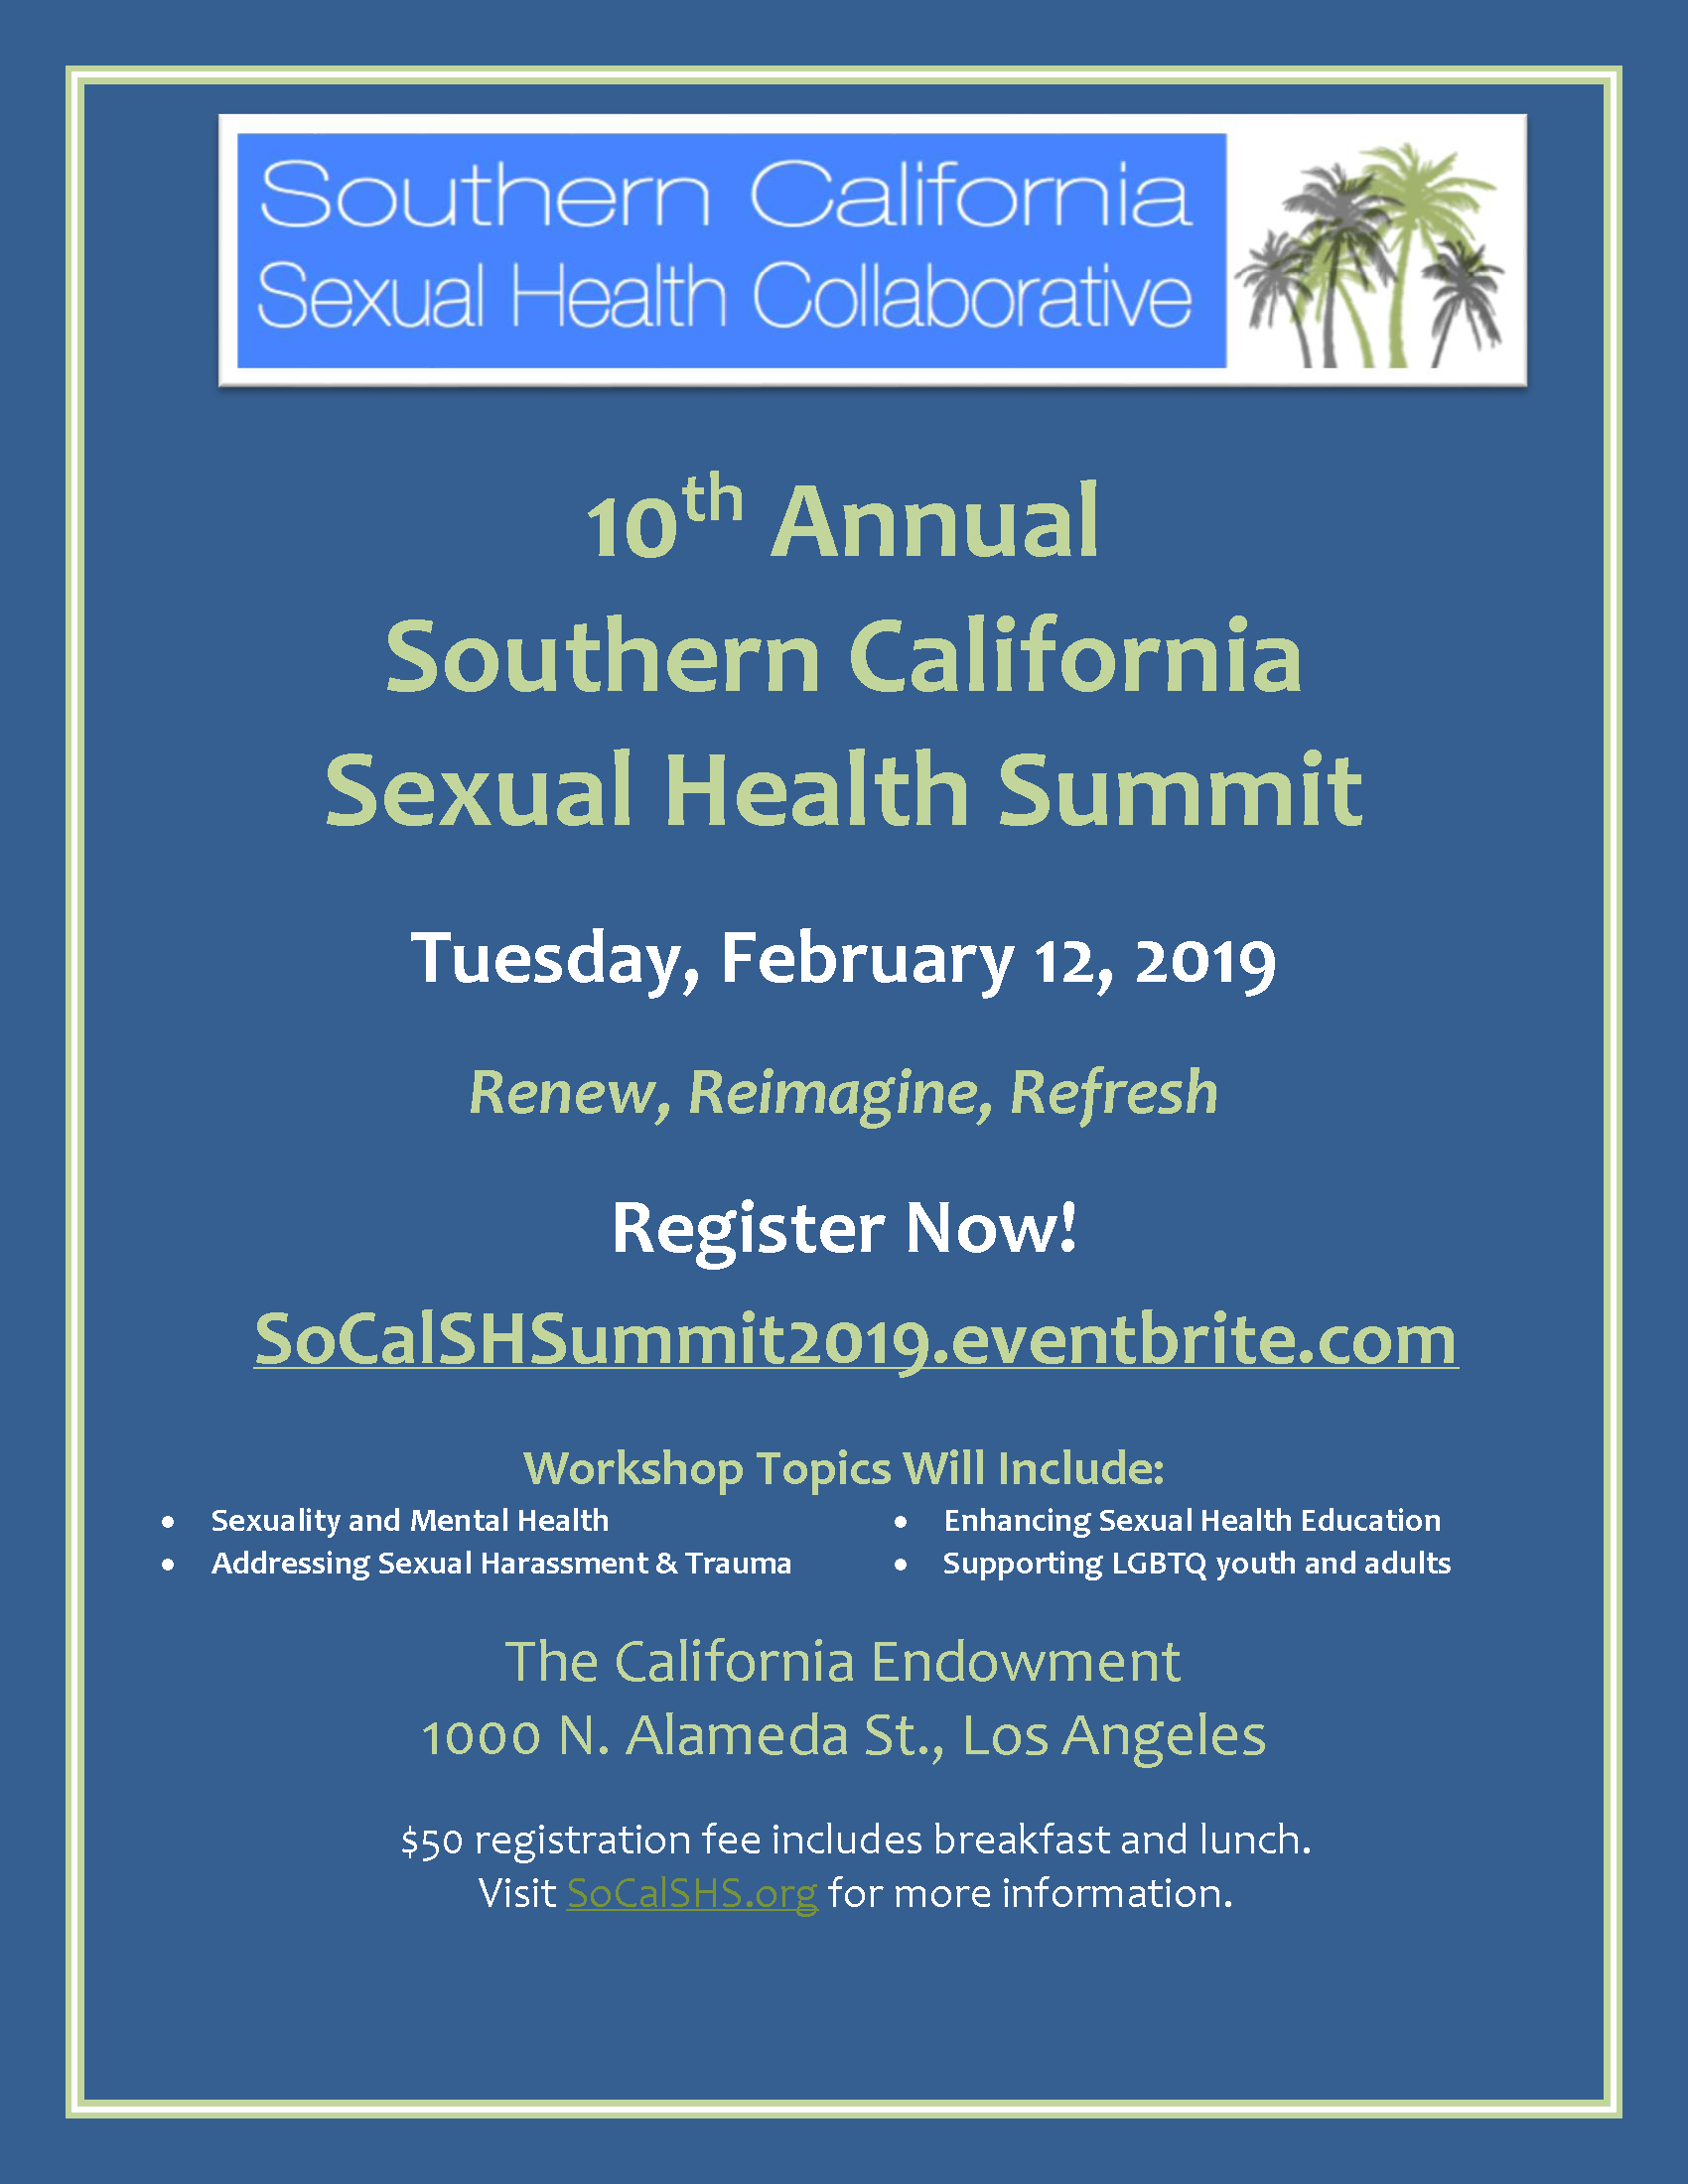 2019_SoCal_Sexual_Health_Summit_Flyer.png